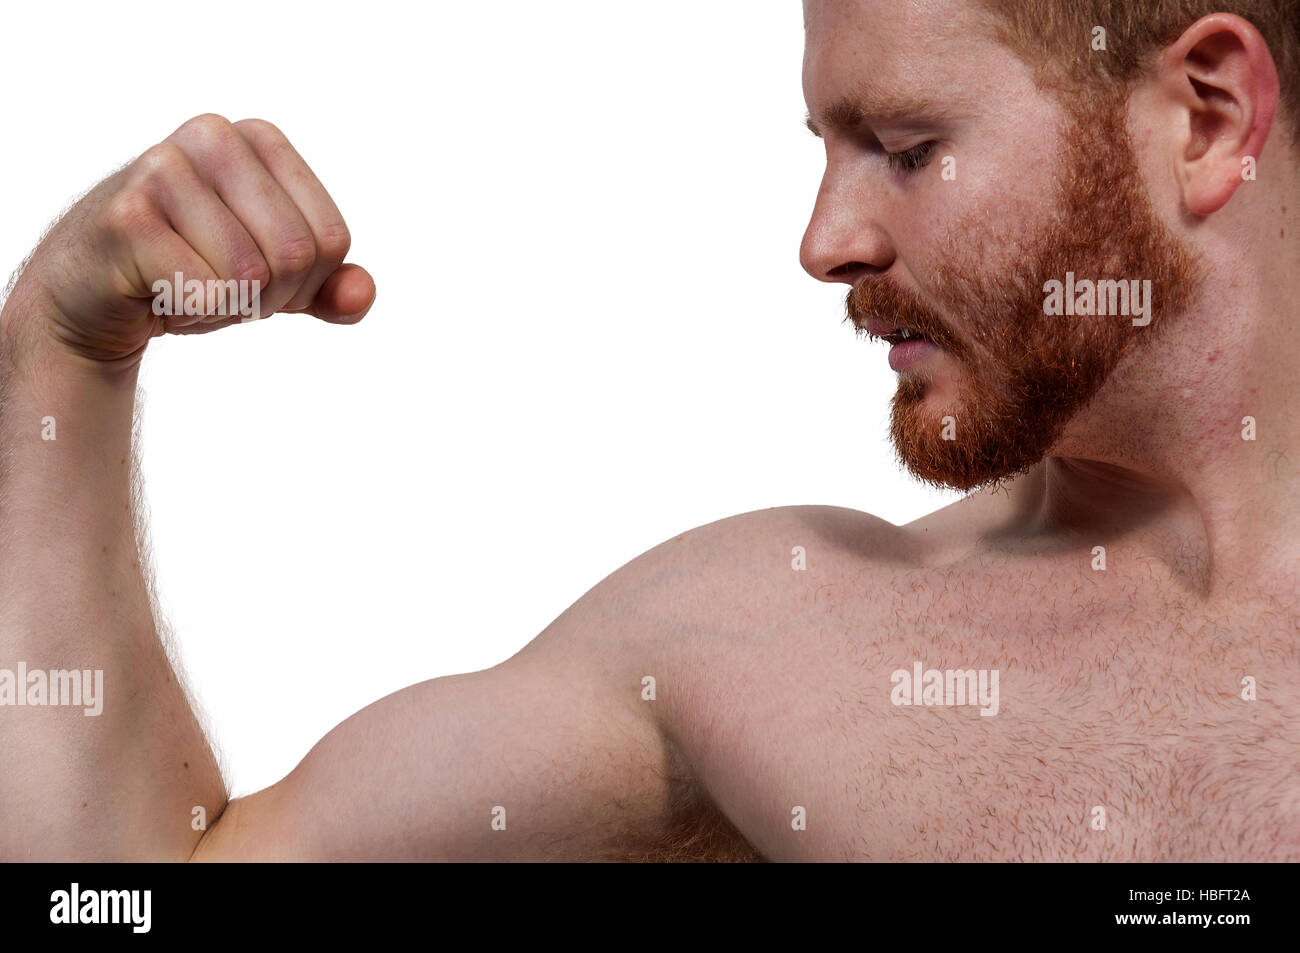 Man Flexing Muscles - Stock Image